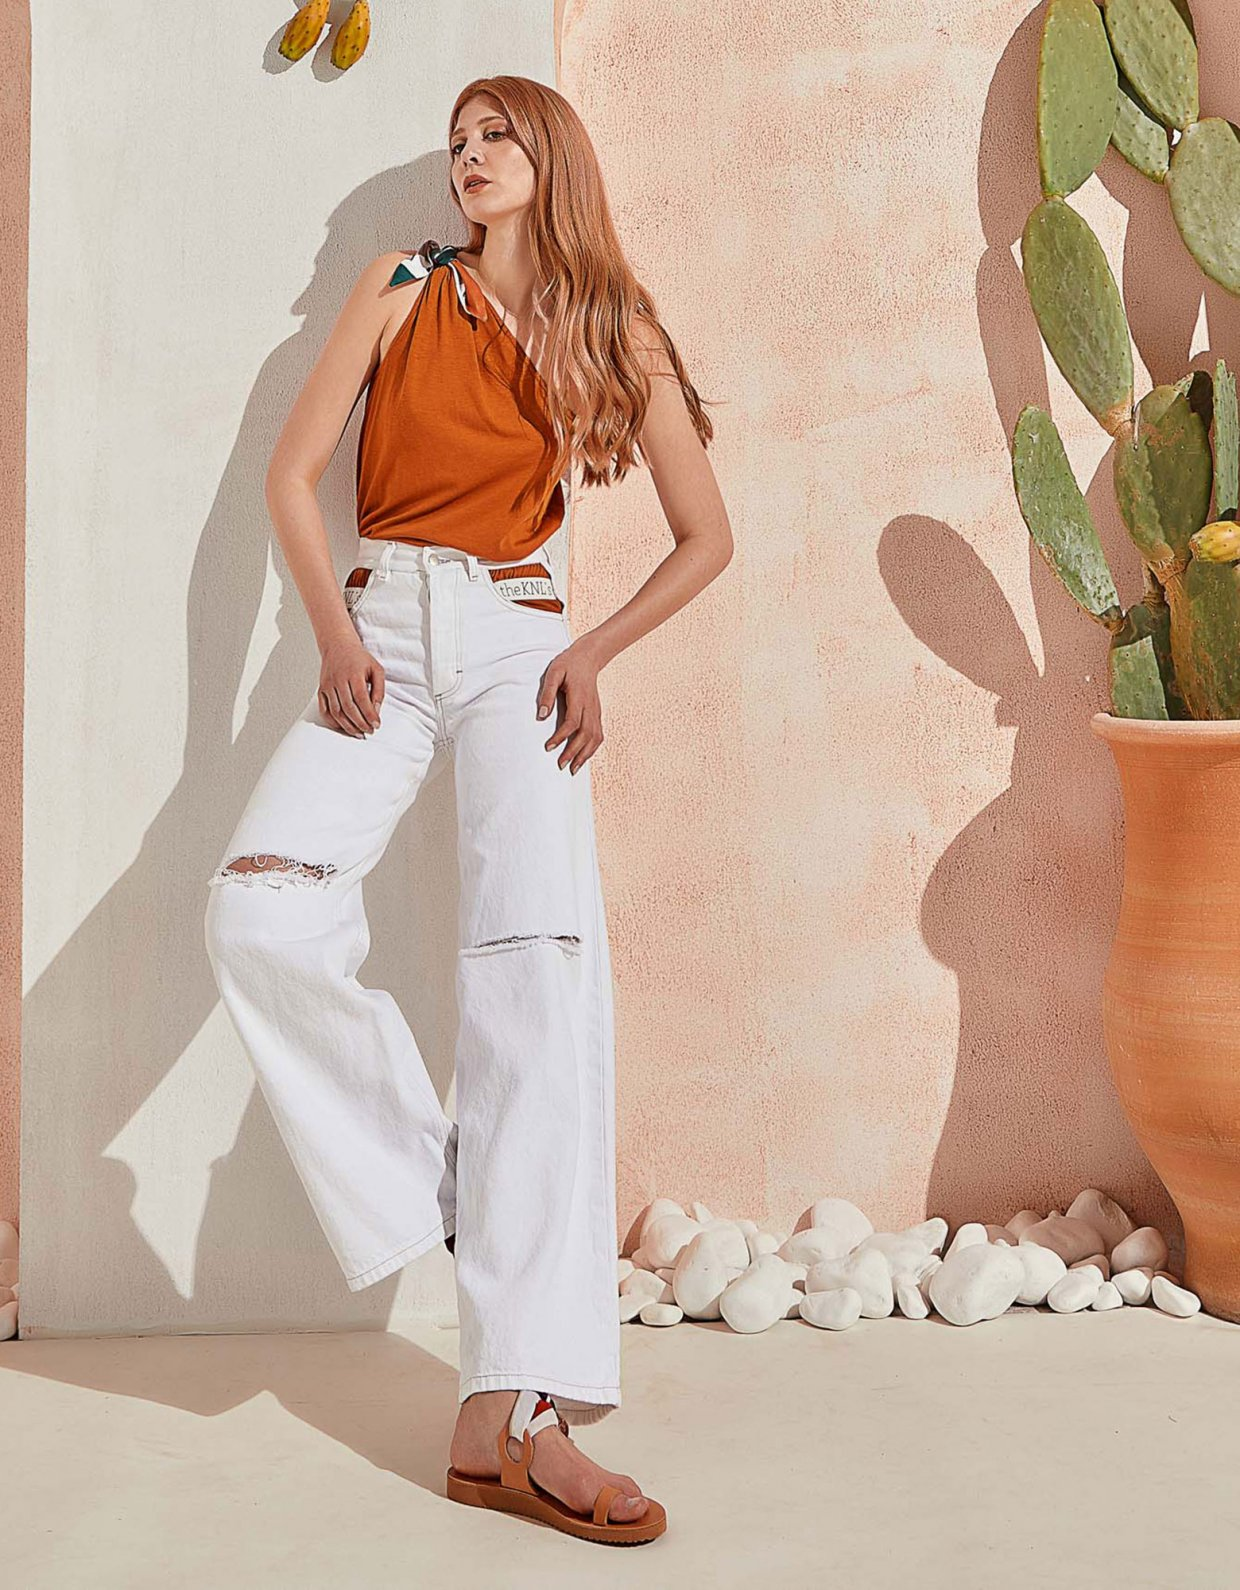 The Knl's Outburst jeans off white